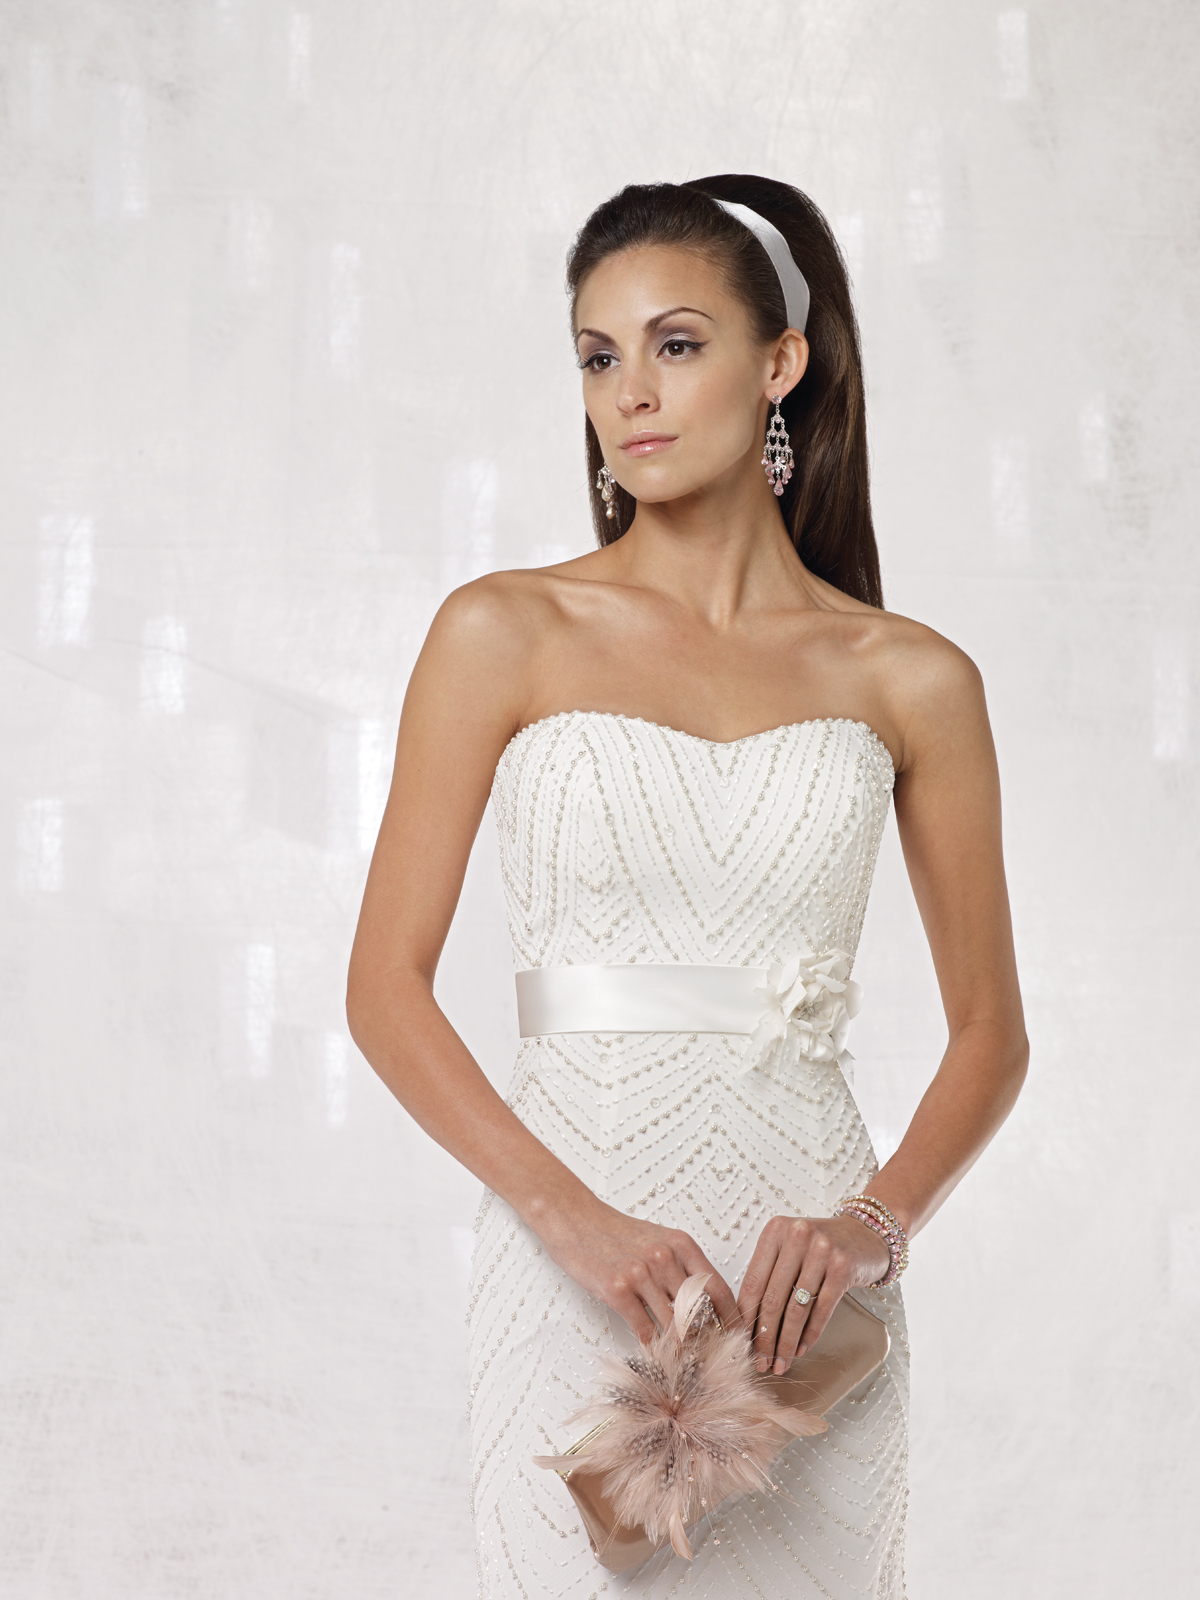 Kathy Ireland Fall 2012 Bridal Collection The Fashionbrides